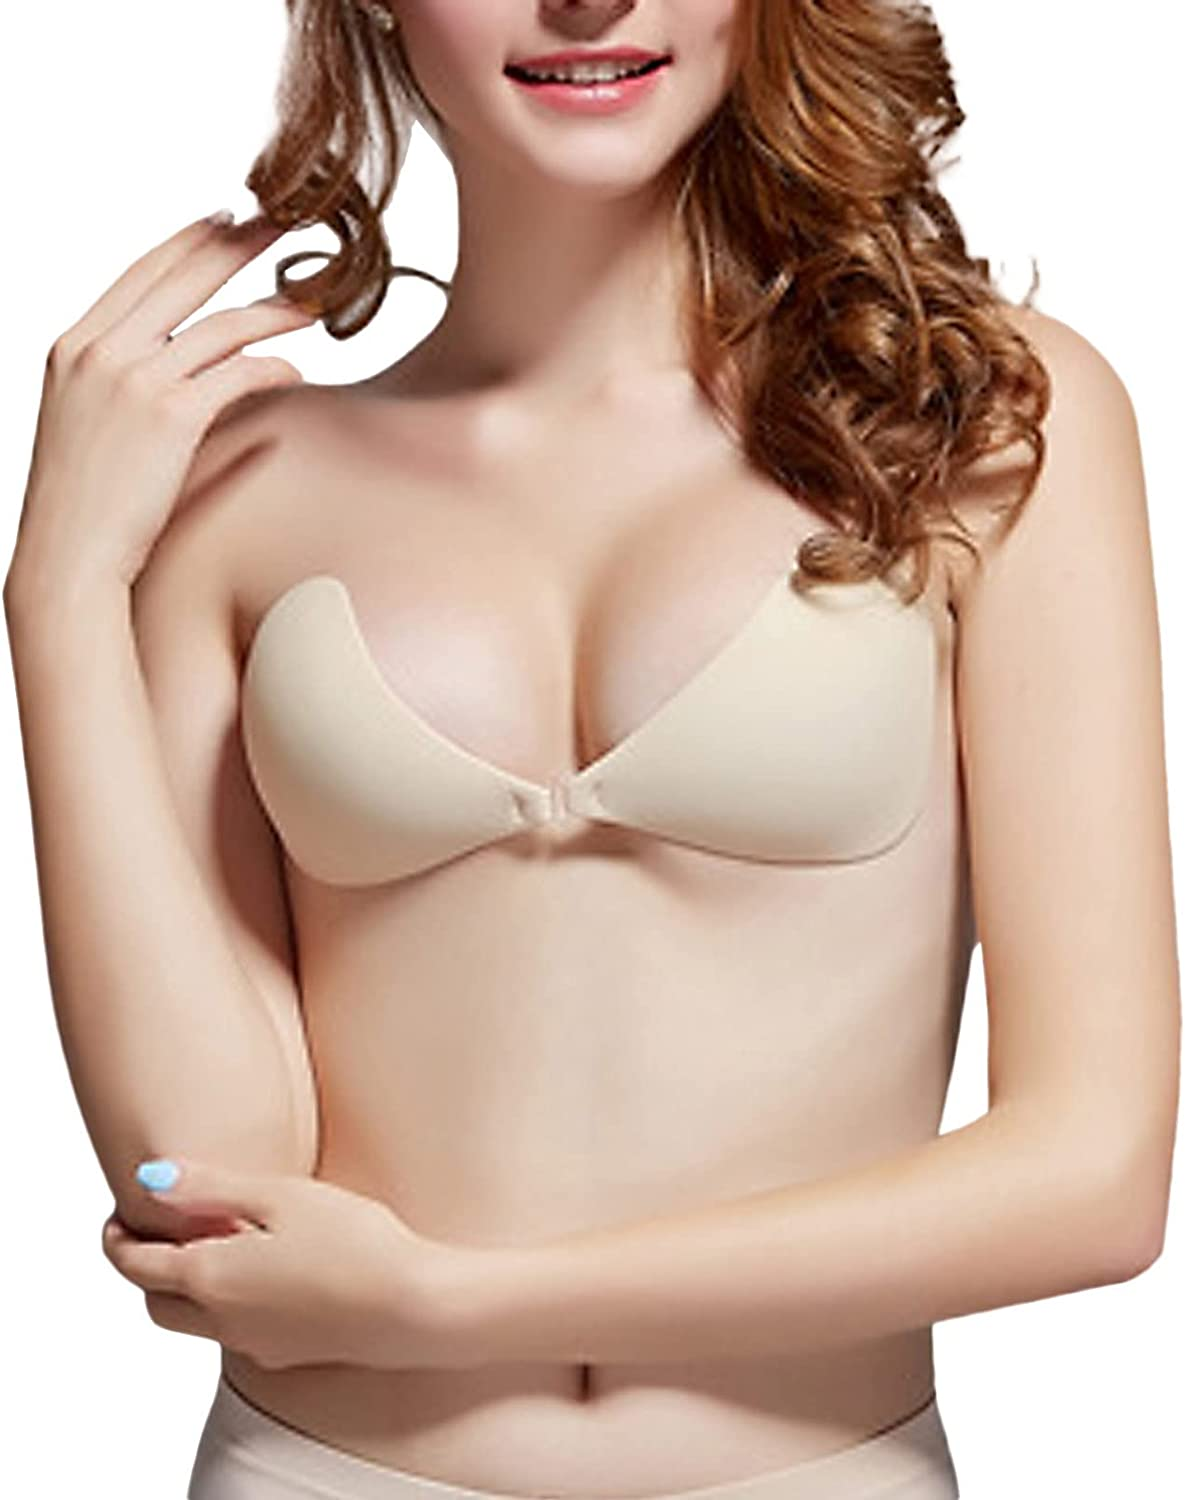 Popular standard JUSTMYTOP Adhesive All items in the store Bra Reusable Strapless Silicone Push-up Self